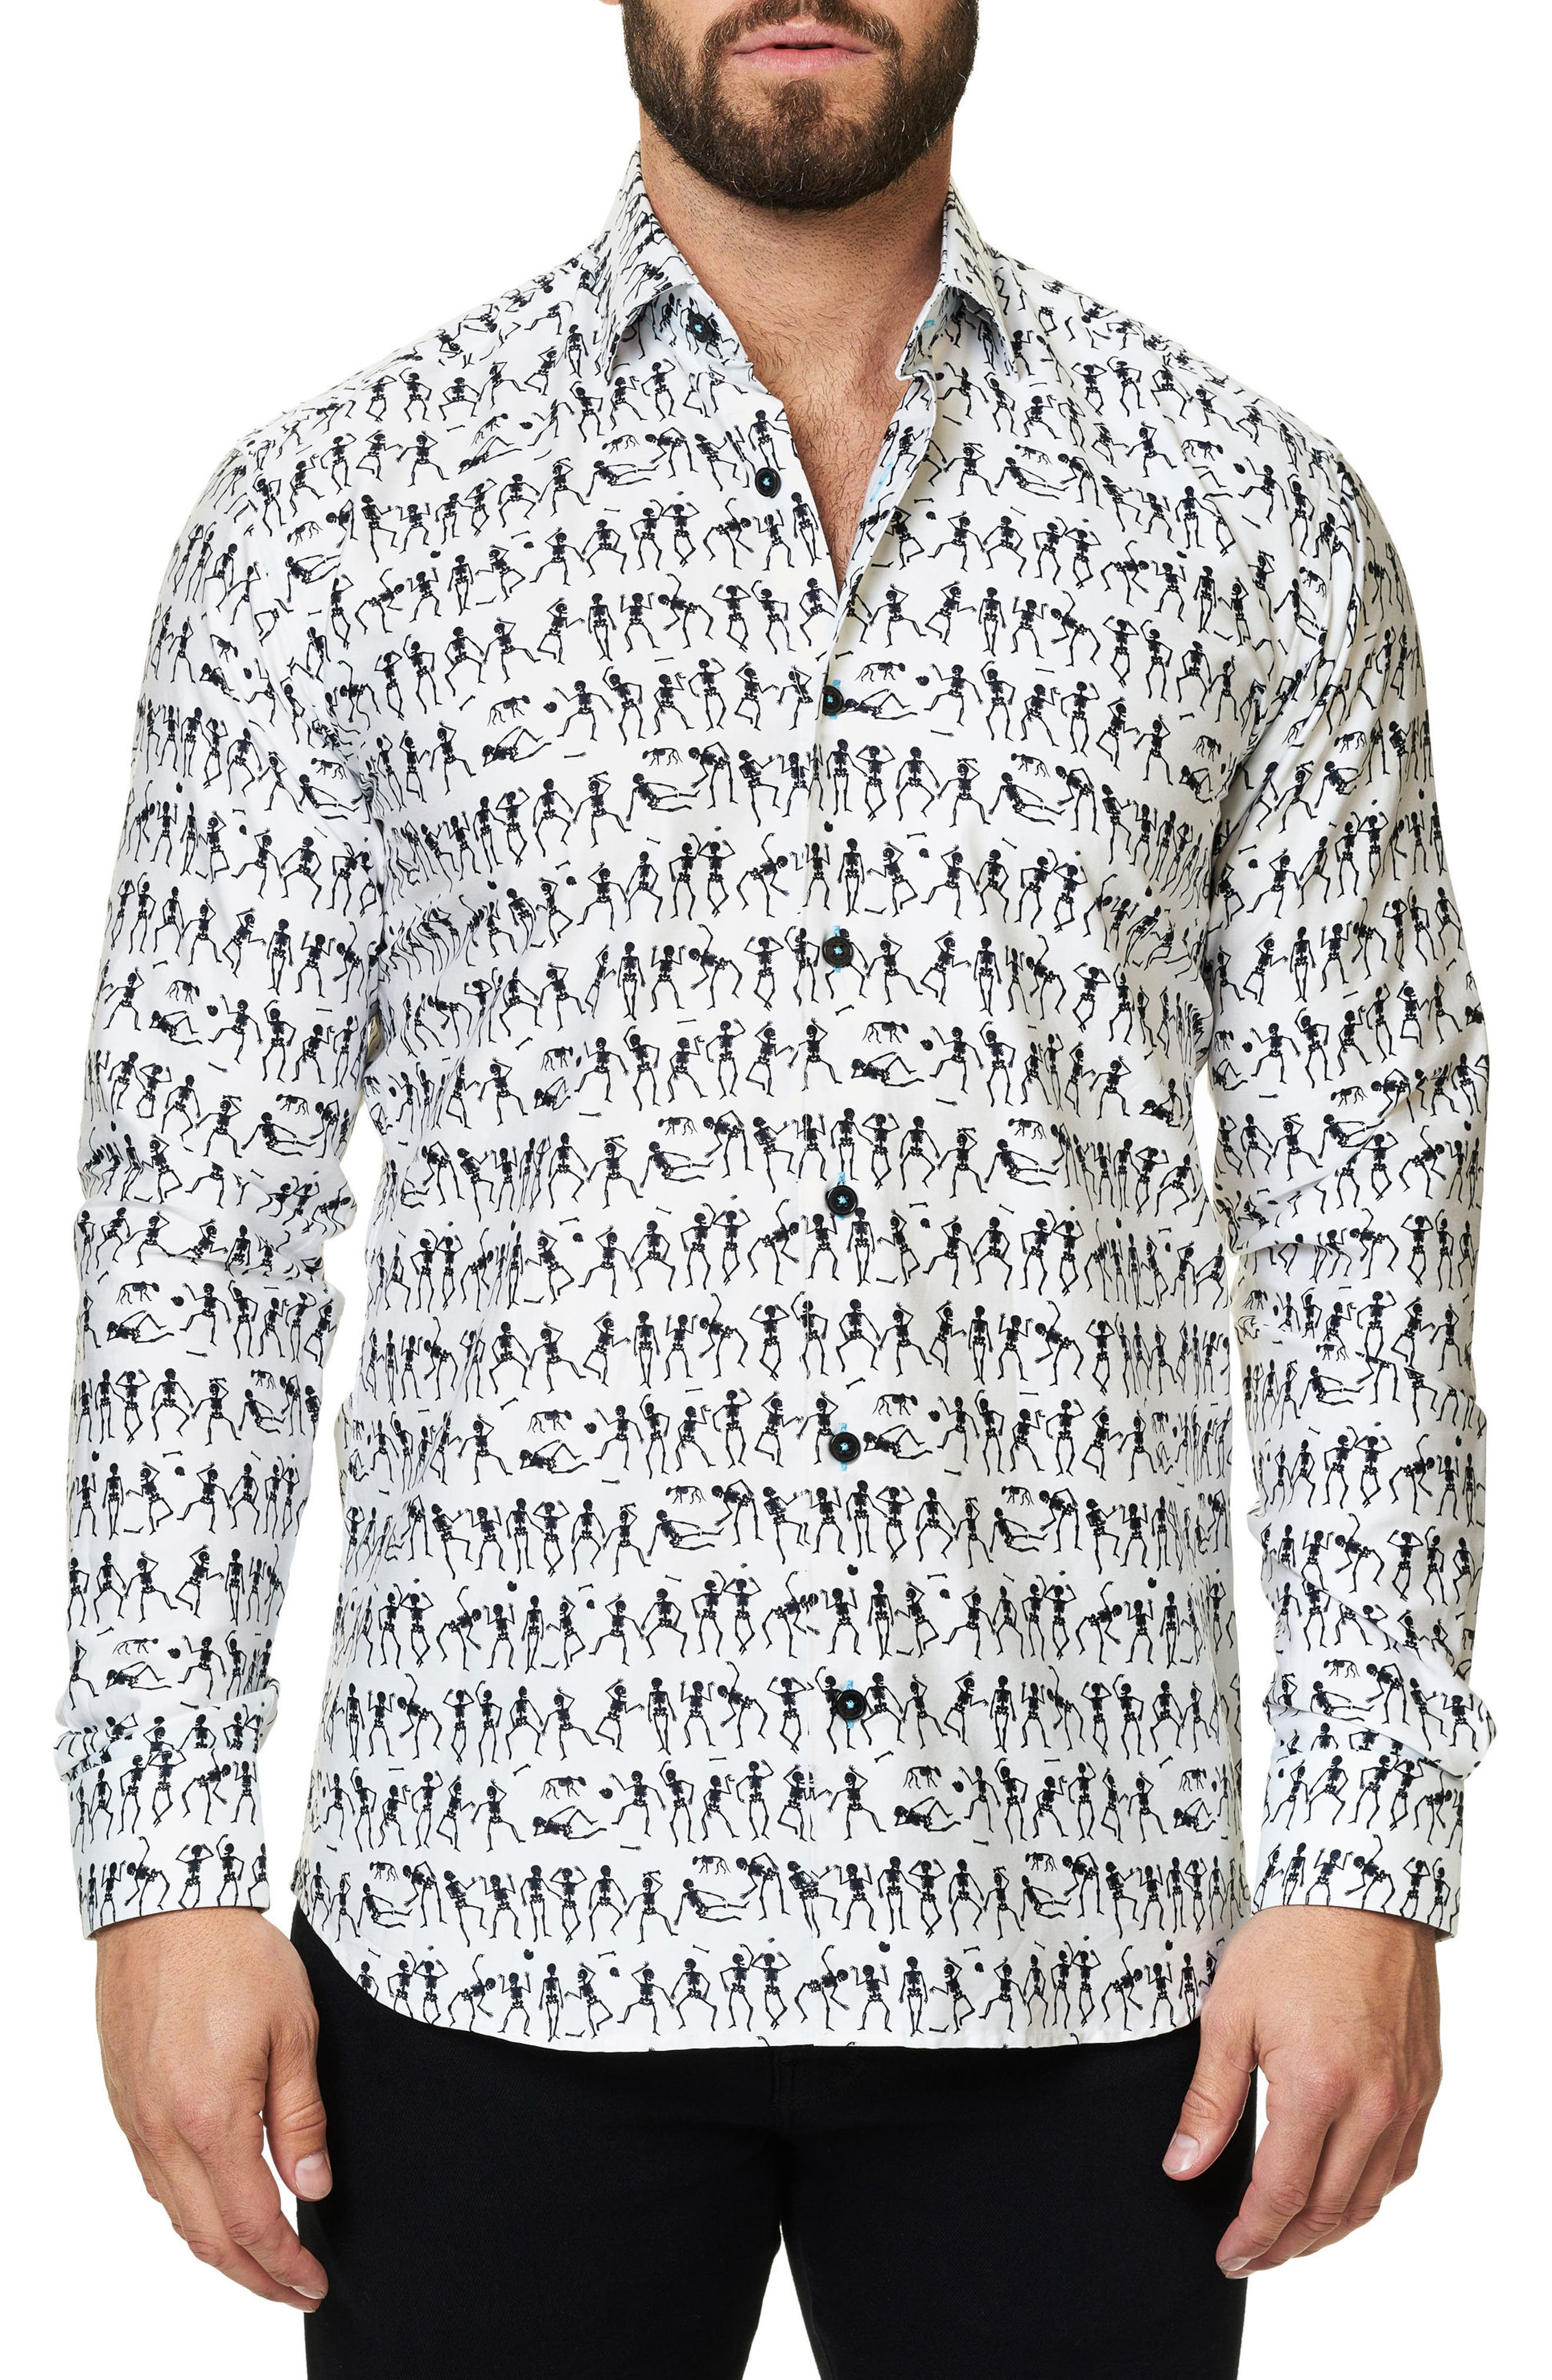 Maceoo Luxor Funky Skeleton Trim Fit Sport Shirt